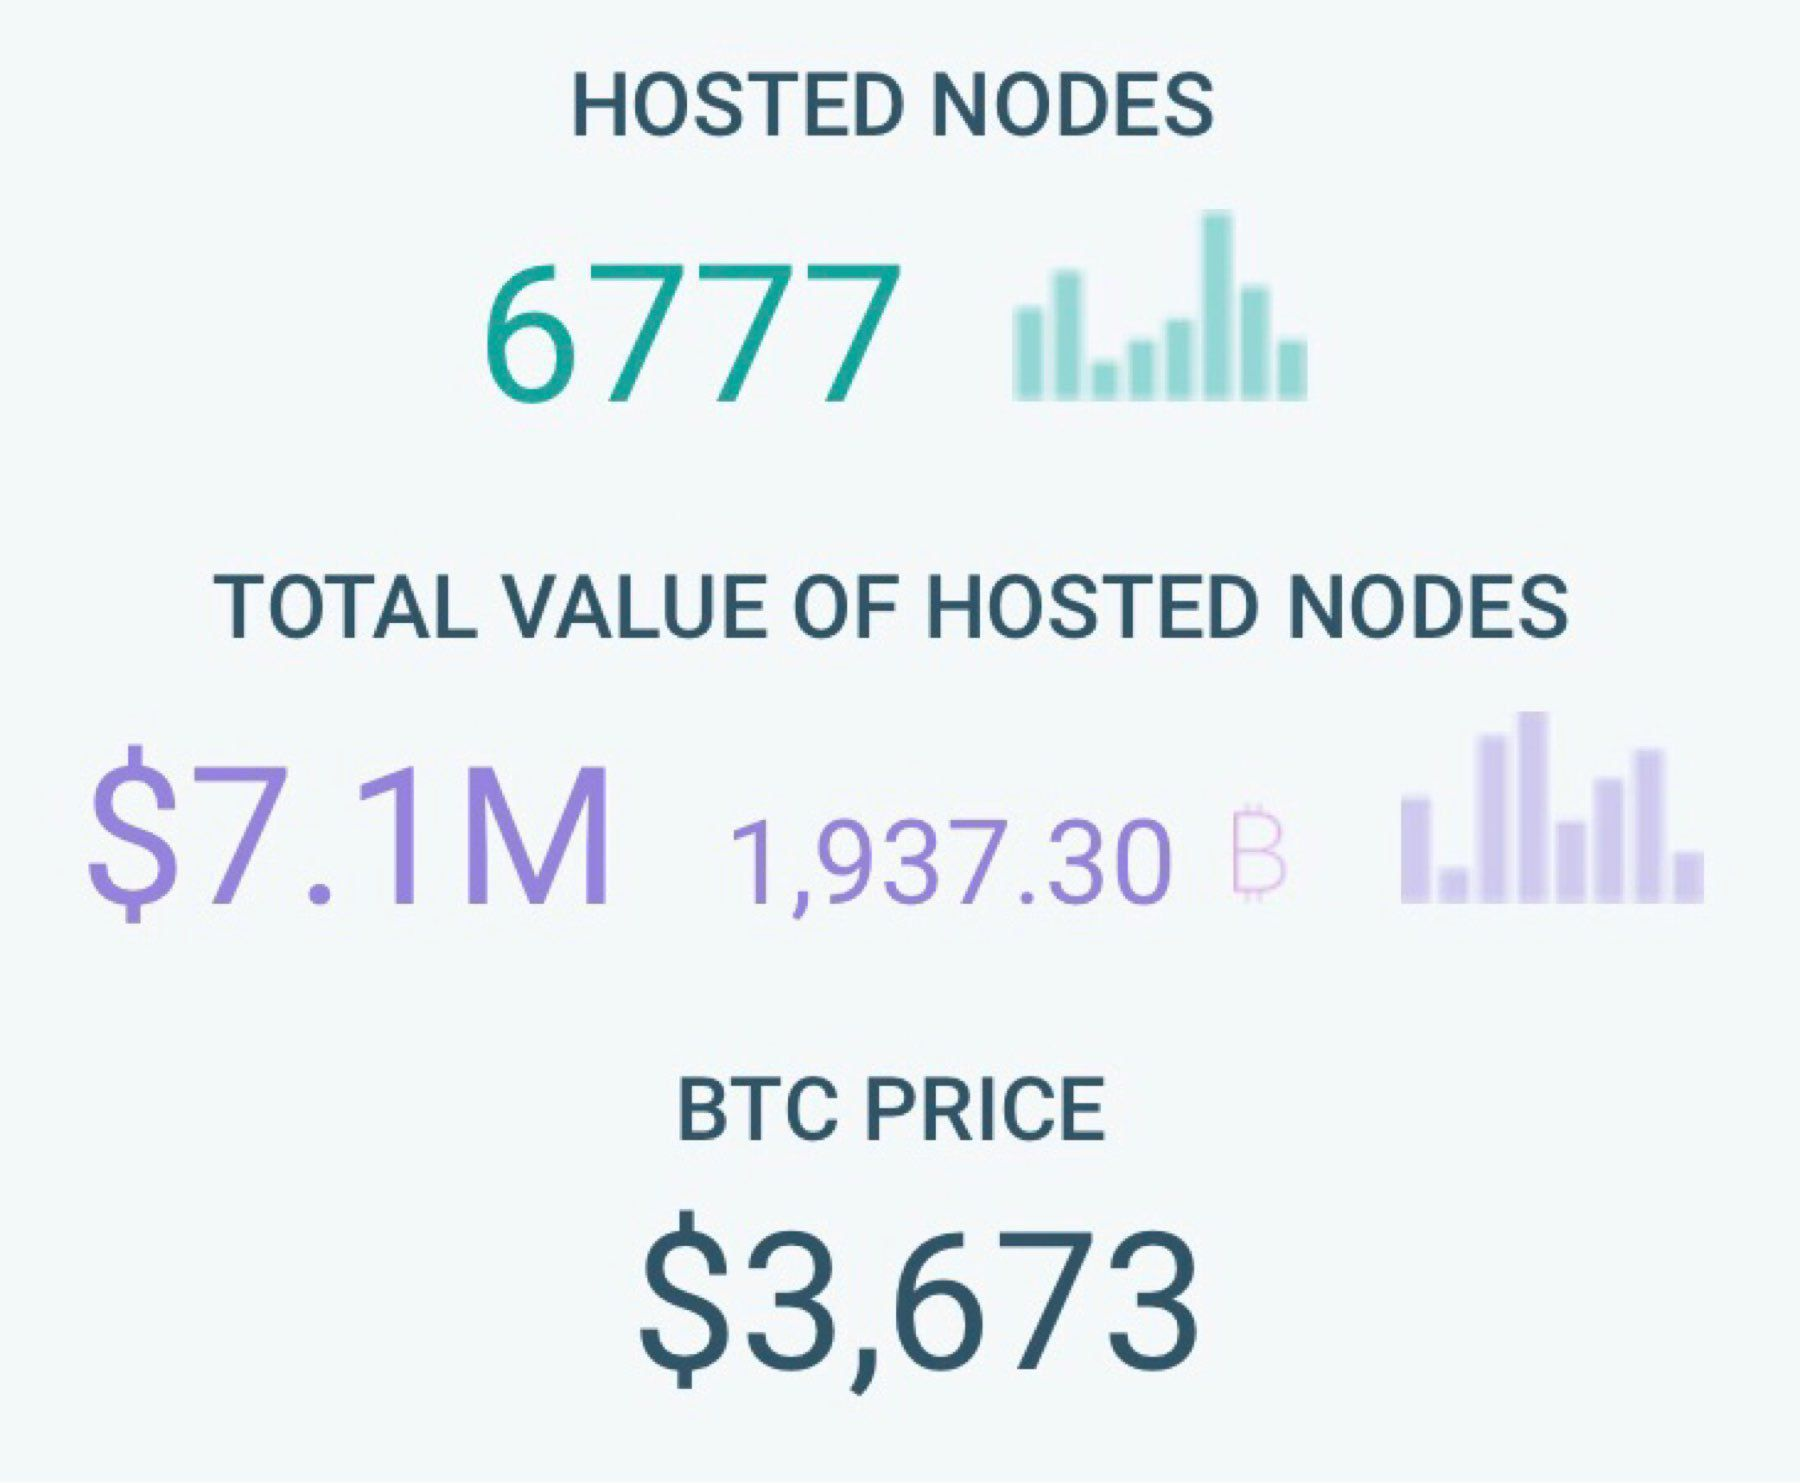 GIN node count